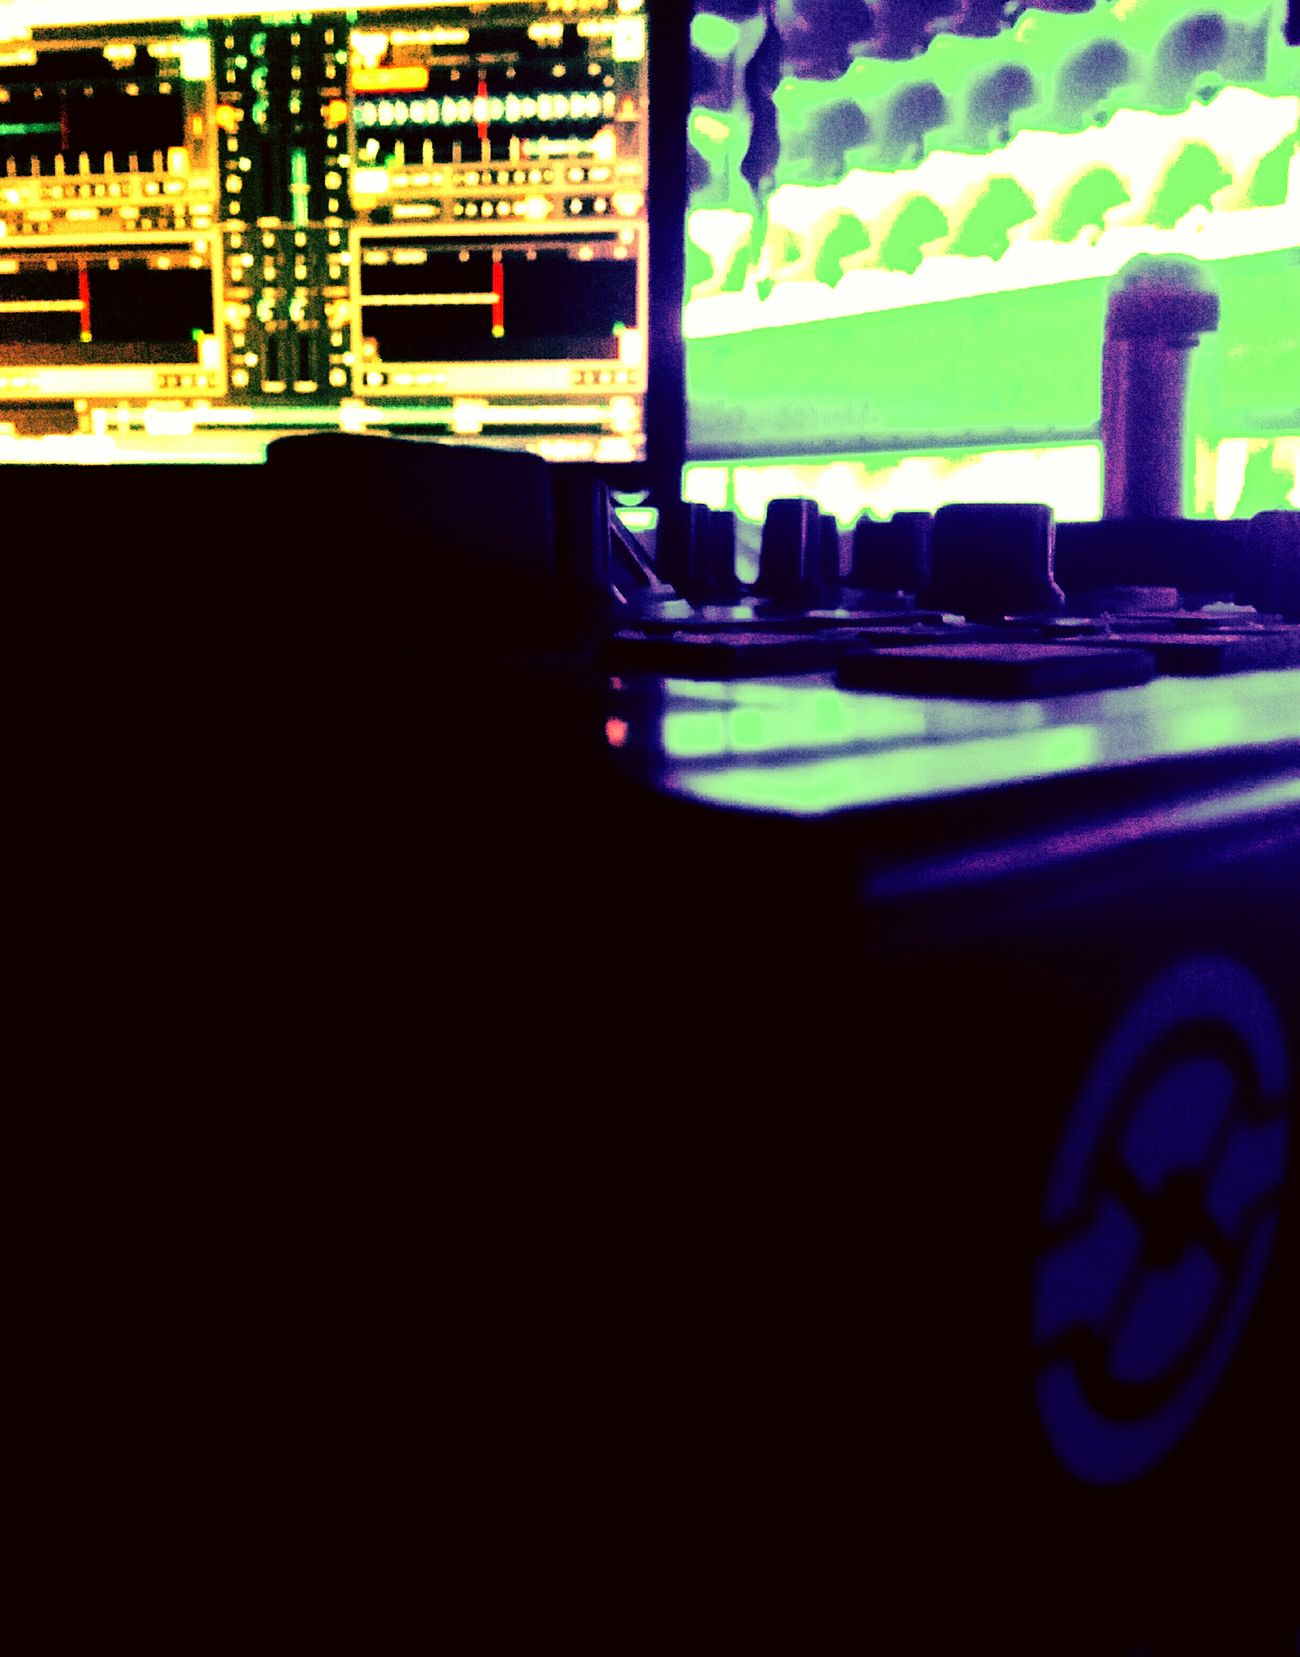 Studio Making Music Making Memories Green Color Studio In My Cellphone Studiolight Filtered Image Mobilephotography Music Brings Us Togheter Collors Light Room Lights